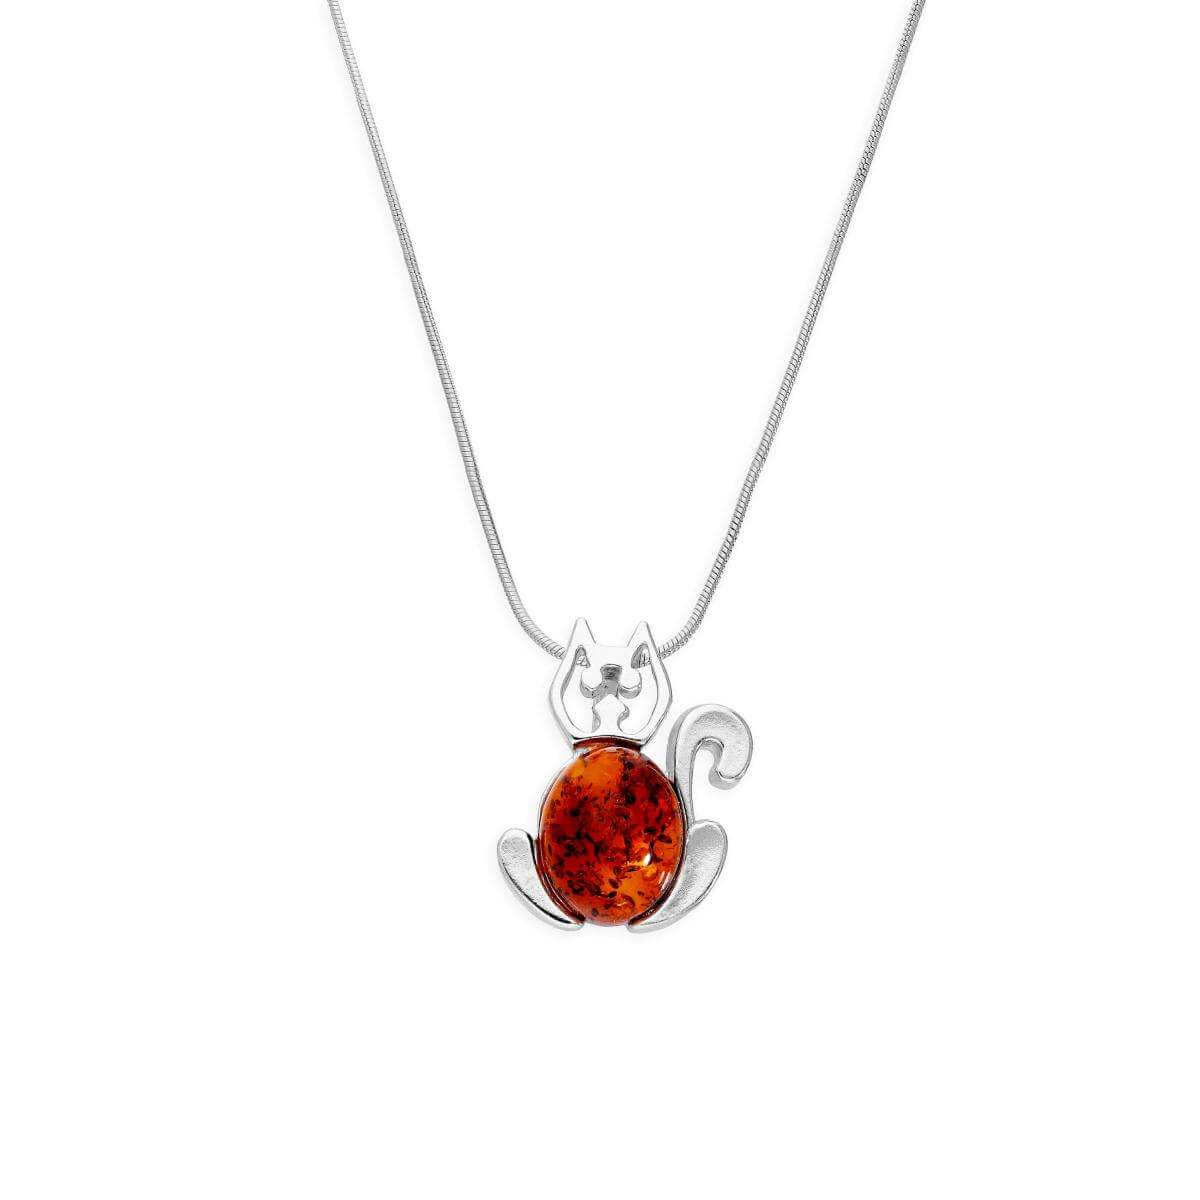 Sterling Silver & Baltic Amber Cat Outline Pendant Necklace 14 - 22 Inches